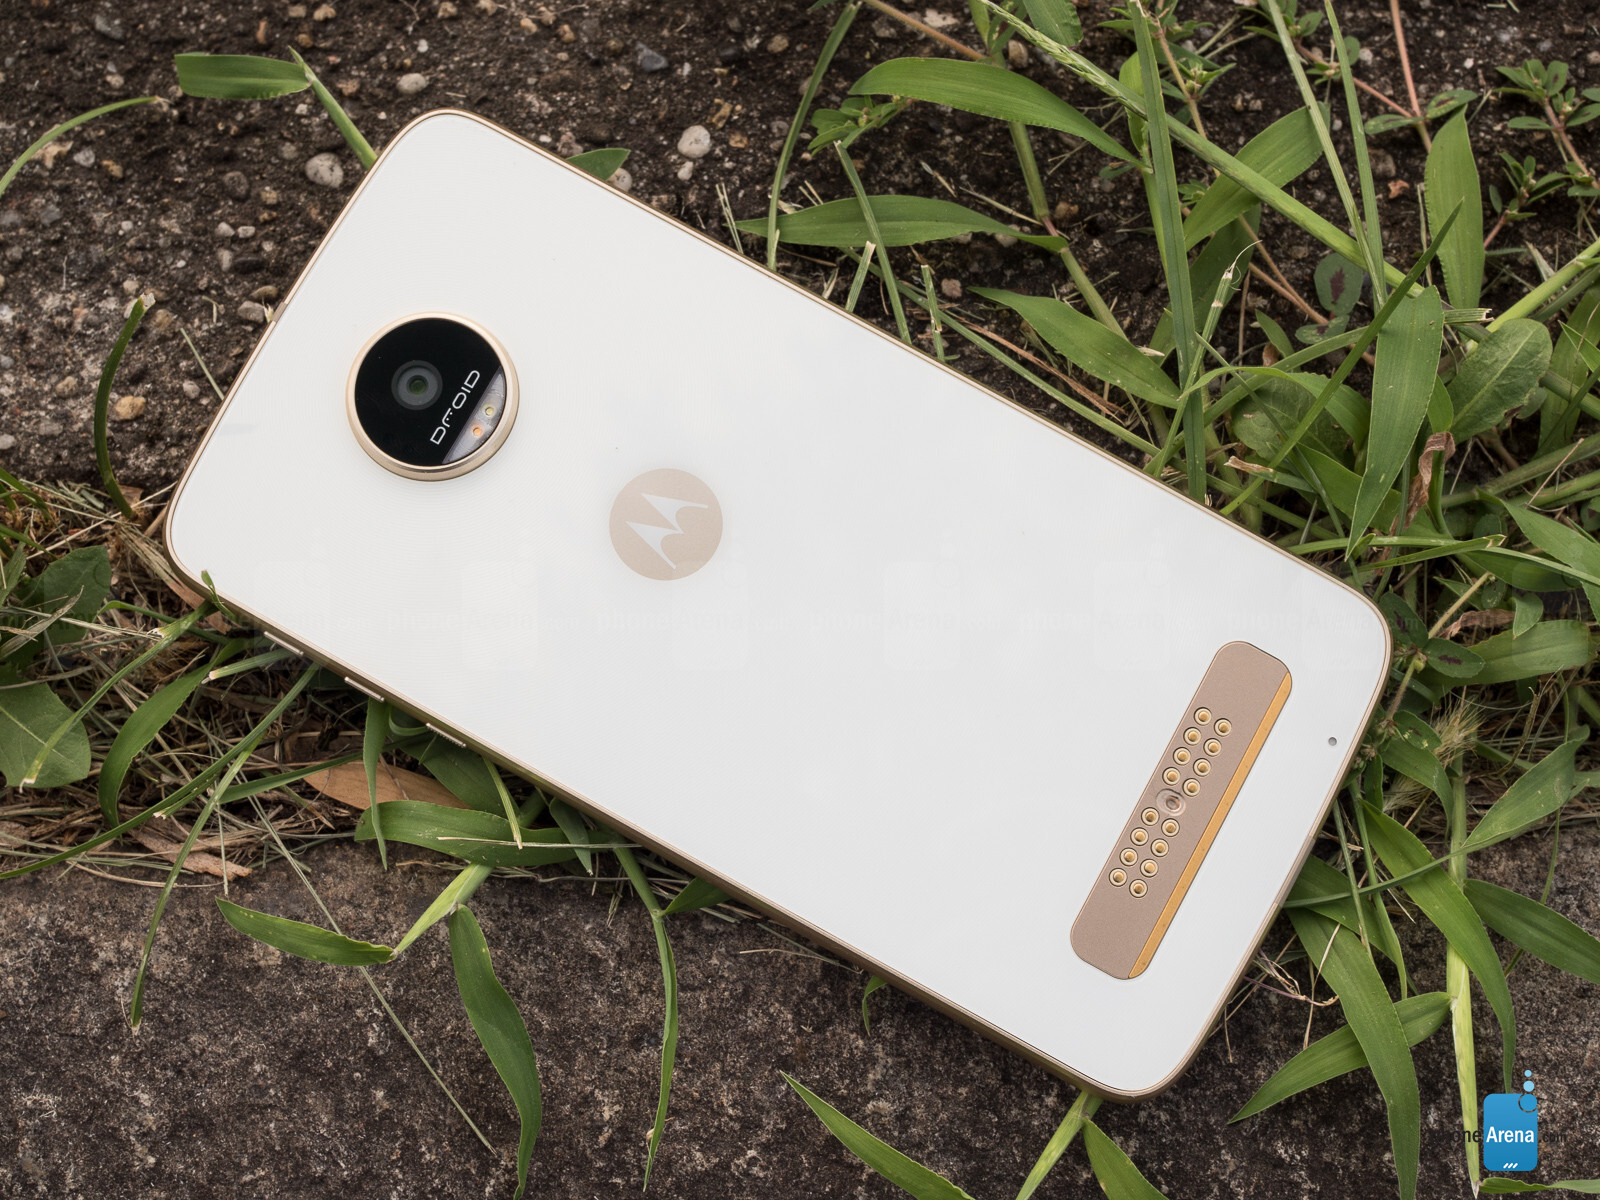 Moto z moto z play now available in india price specifications and - Moto Z Play Droid Review